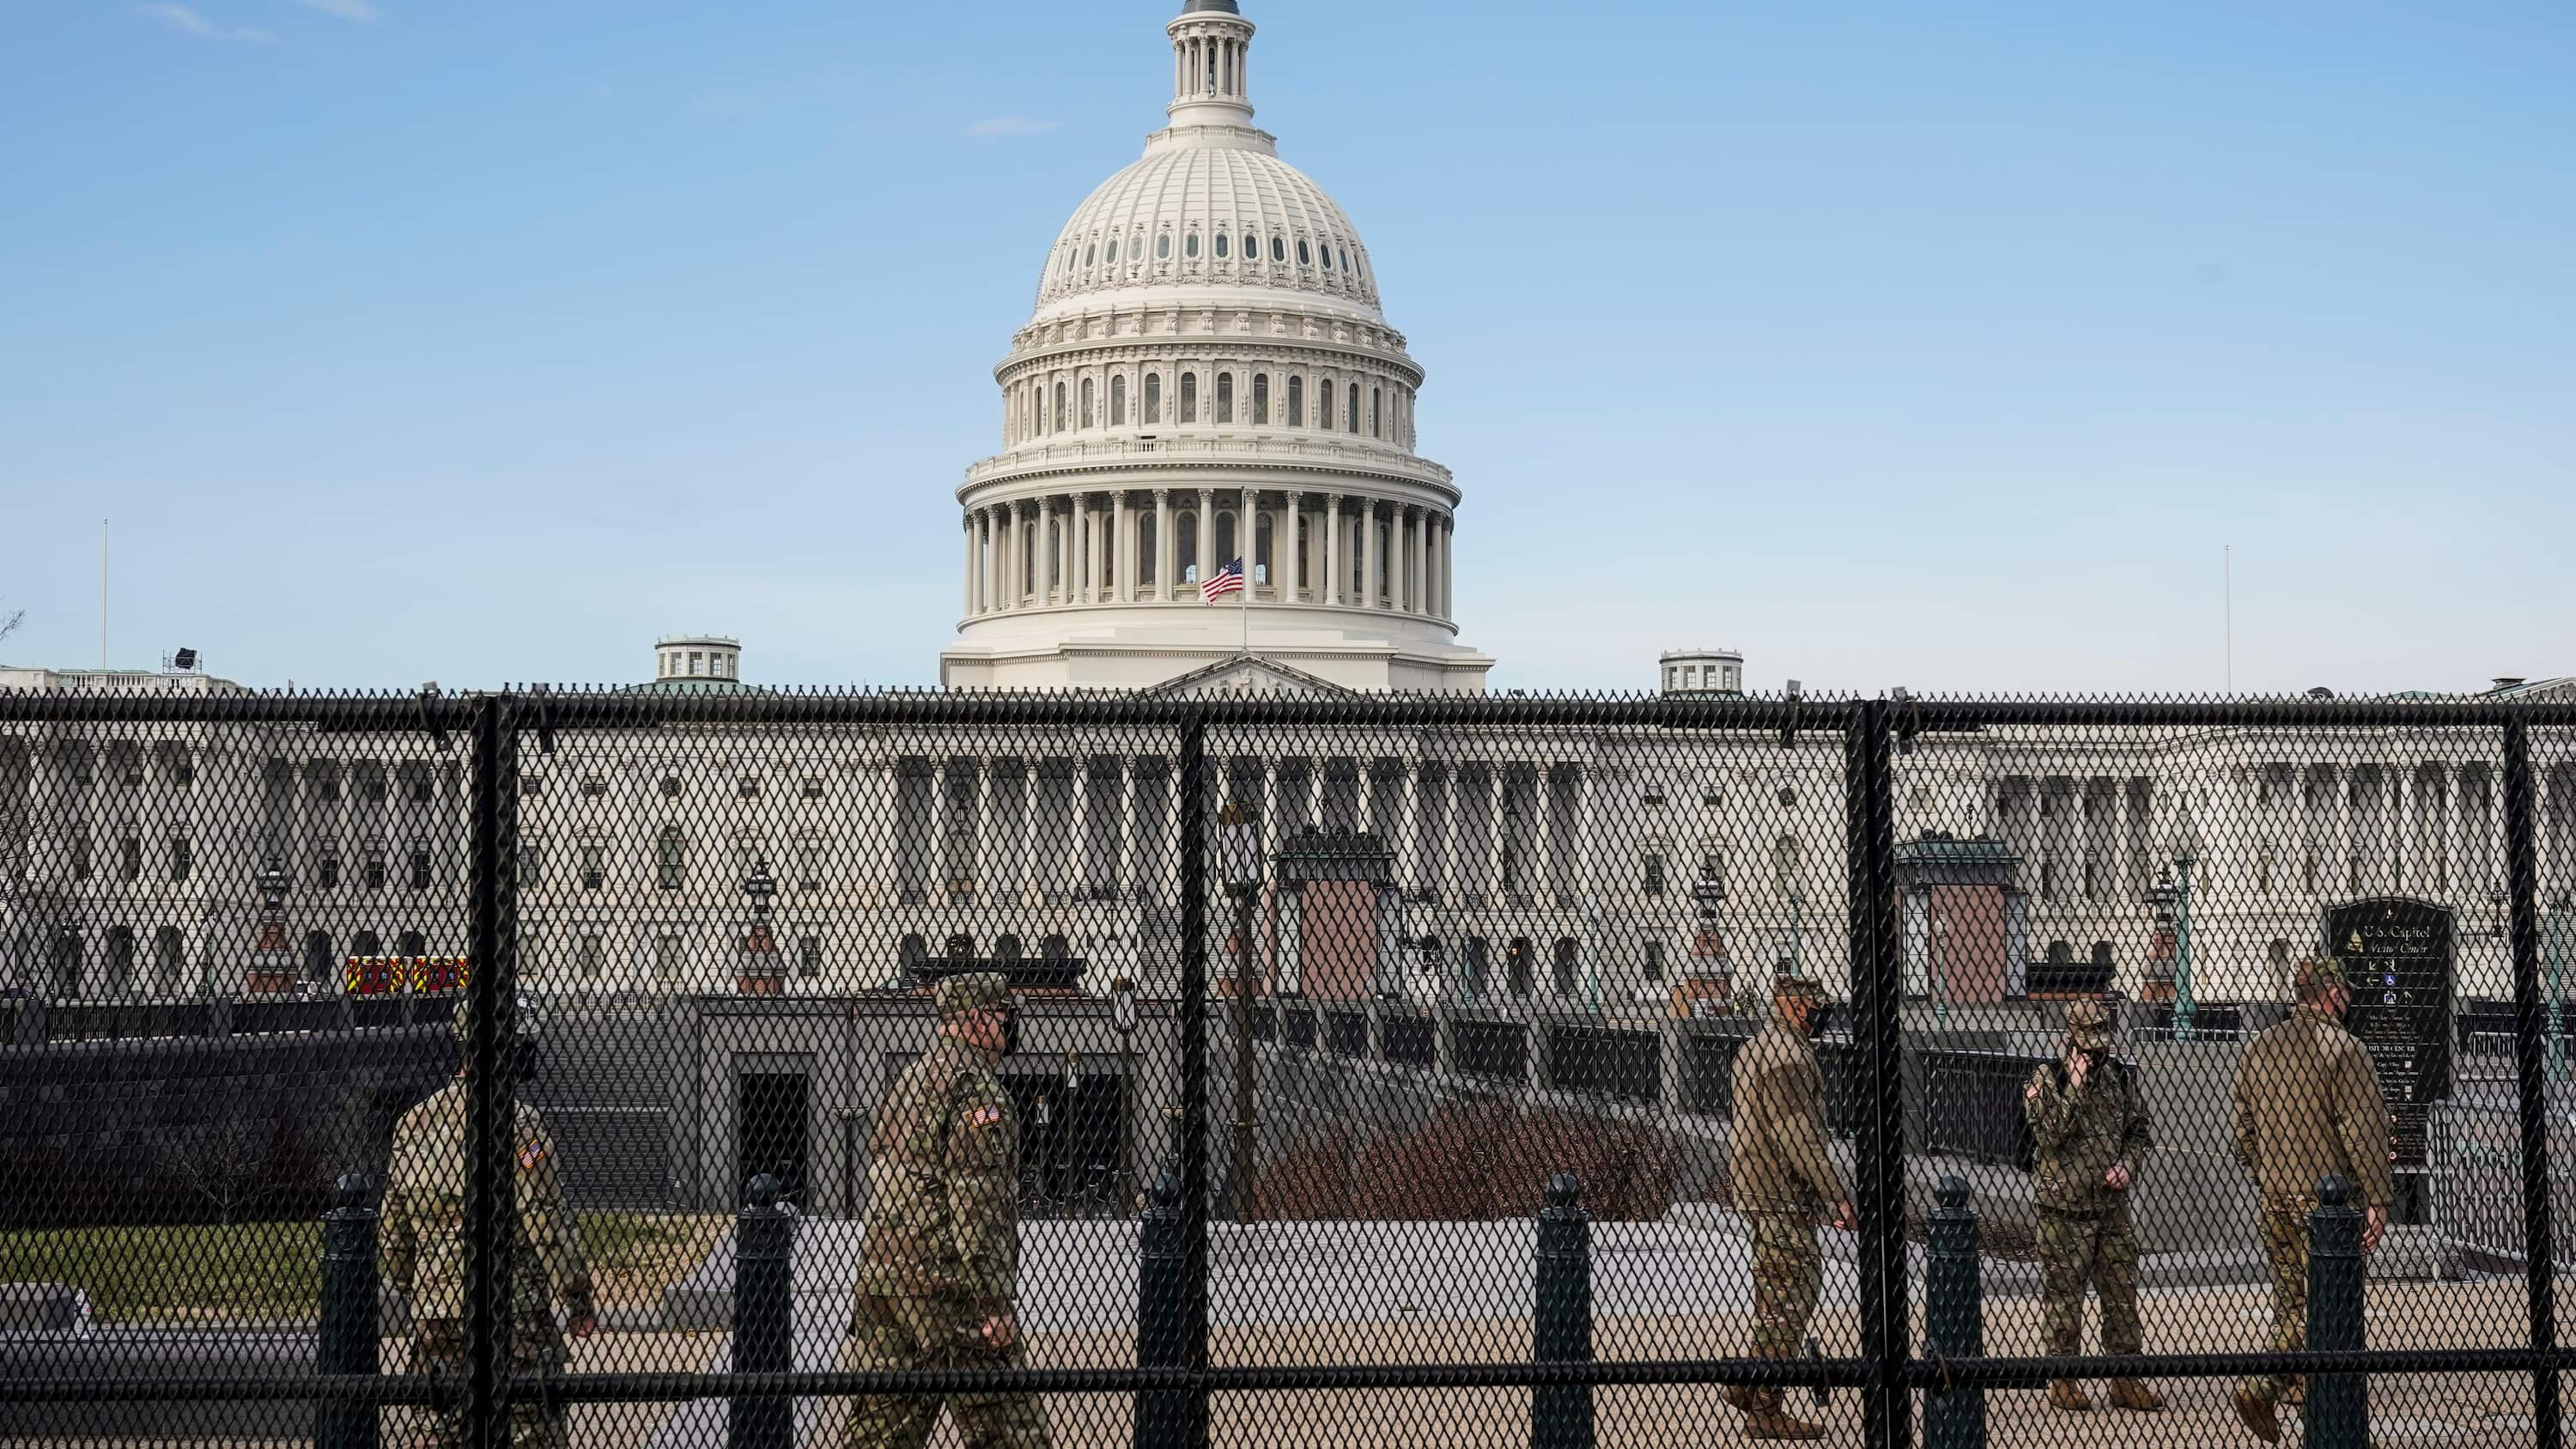 Trump allies involved in rally that ignited U.S. Capitol siege, records show thumbnail